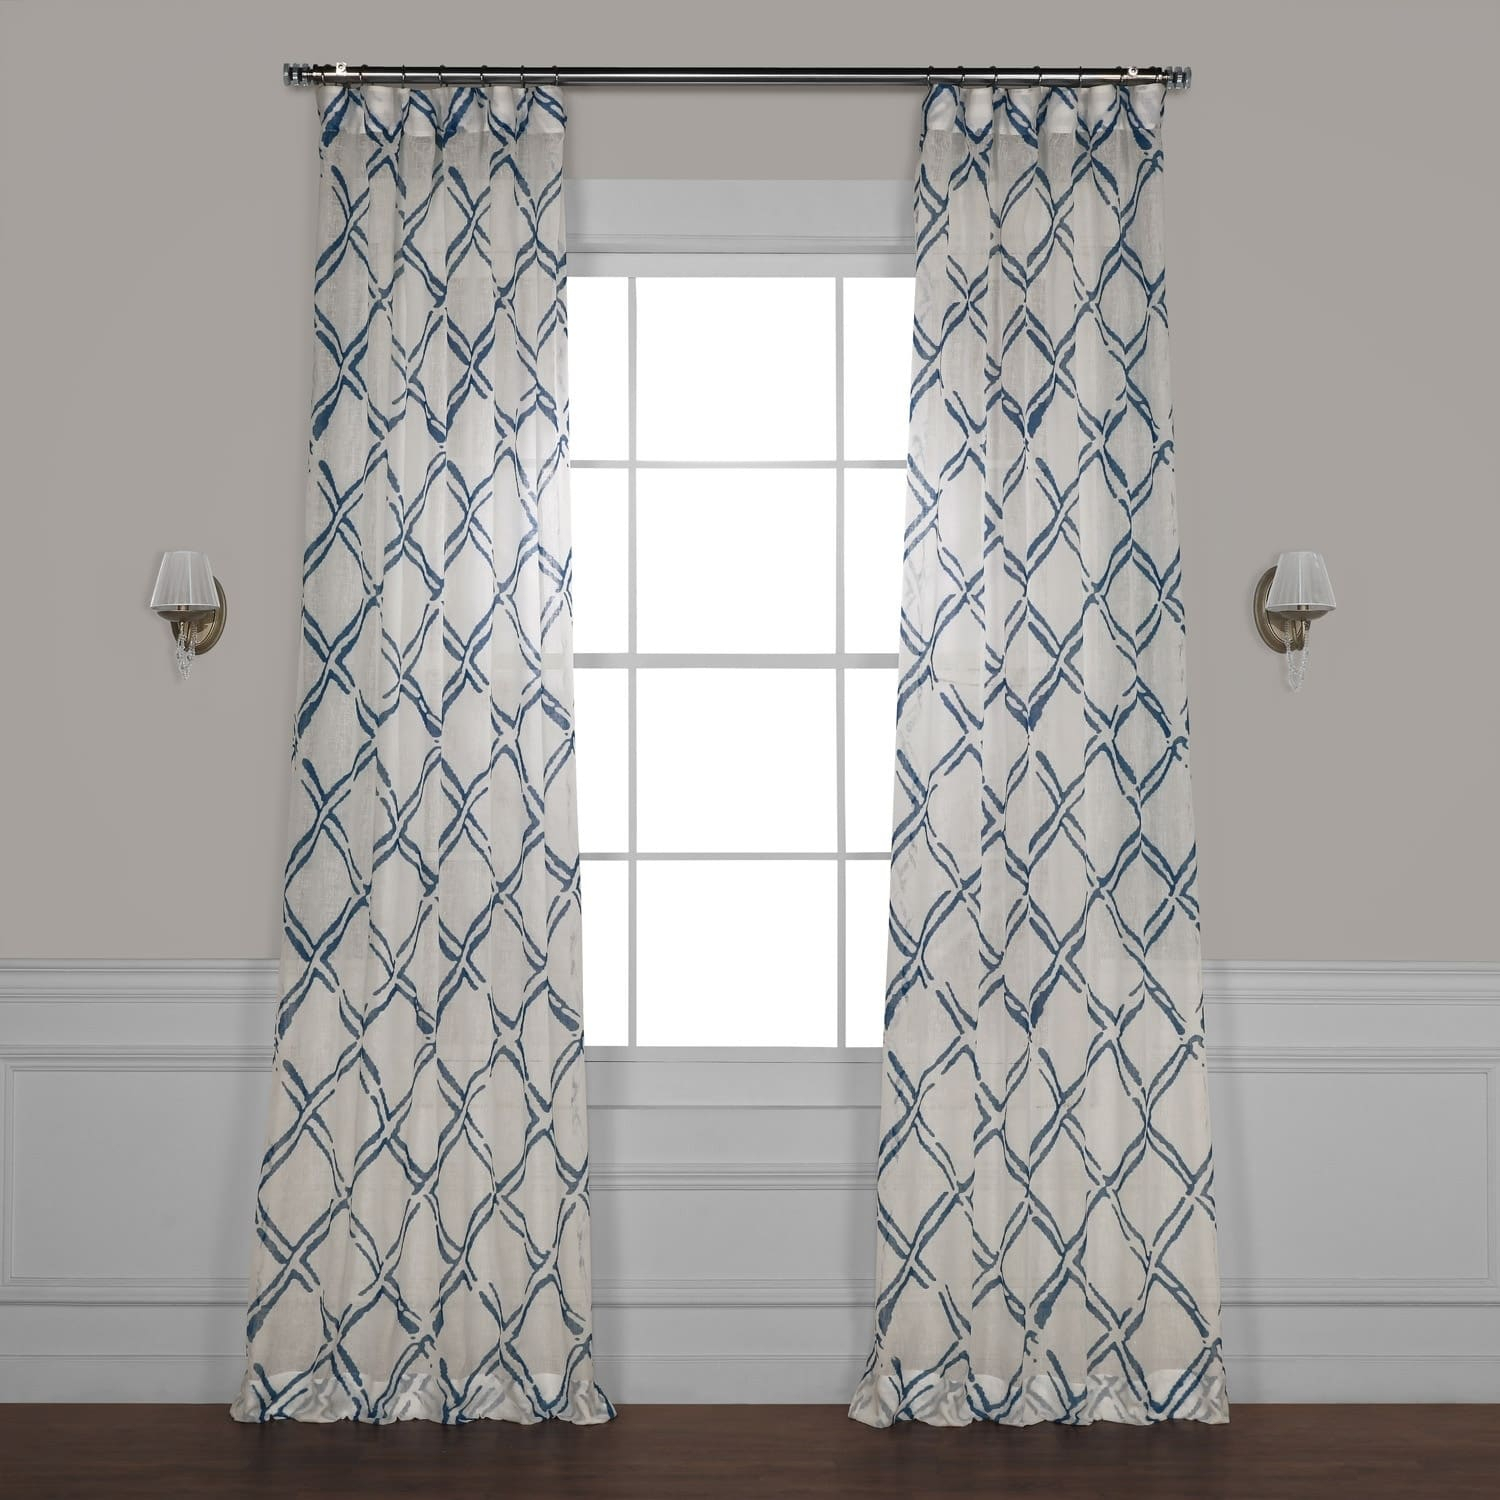 Exclusive Fabrics Normandy Grey Printed Sheer Curtain Panel Intended For Grey Printed Curtain Panels (View 14 of 20)